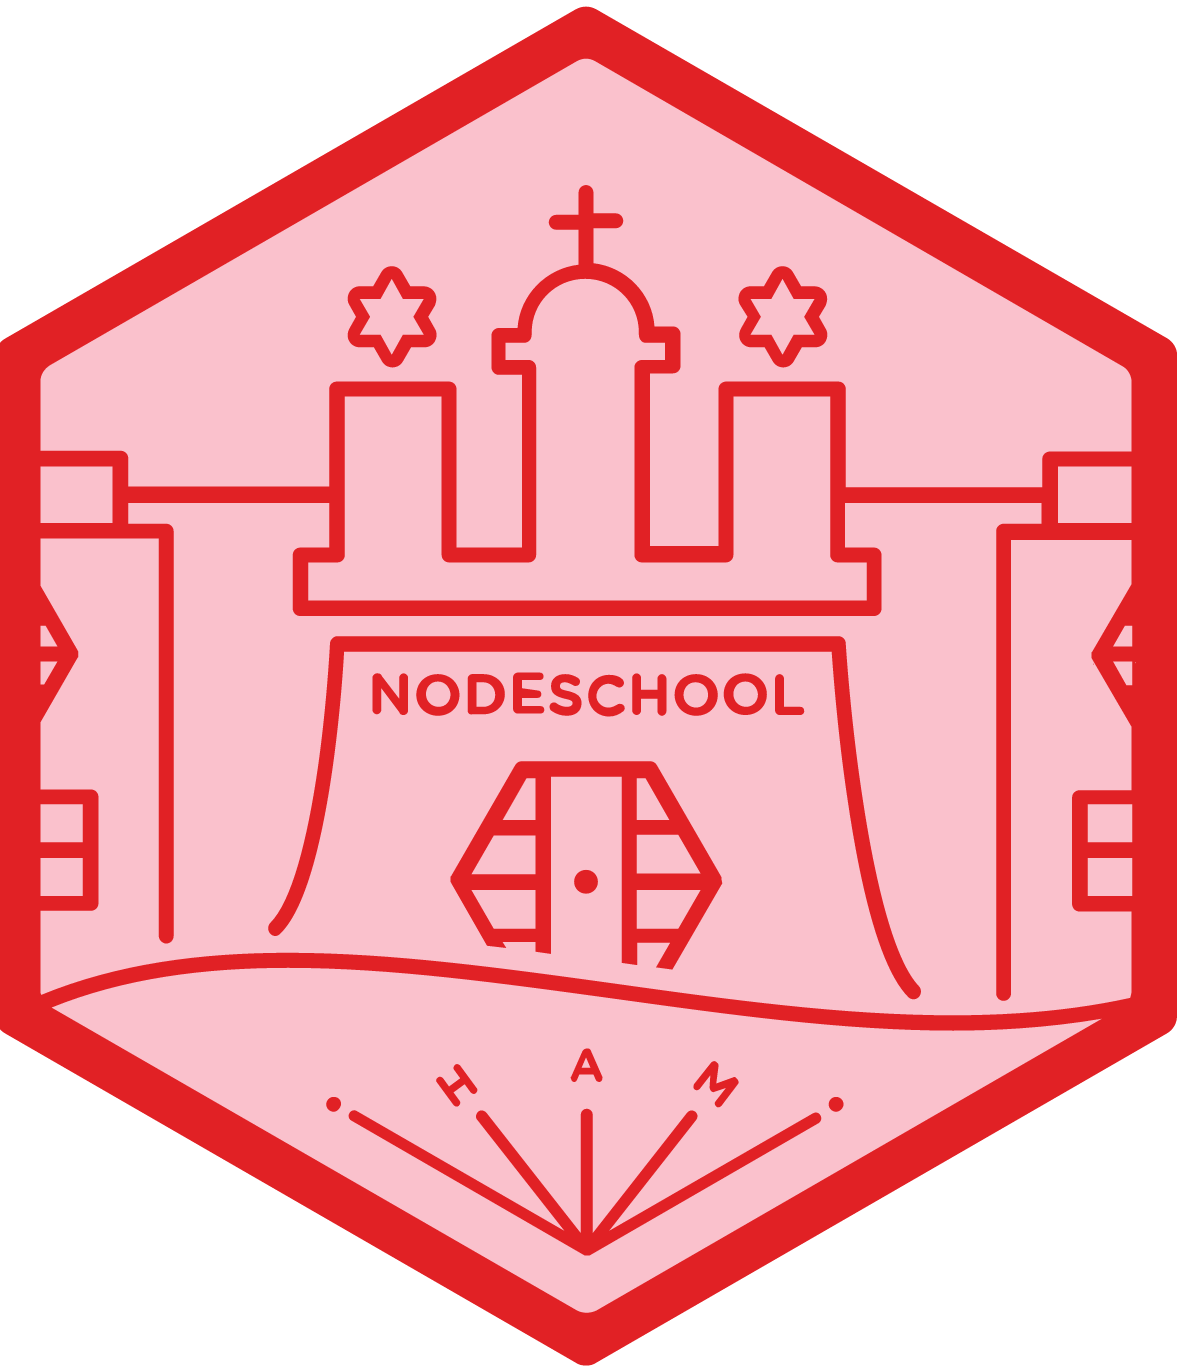 Nodeschool Hamburg